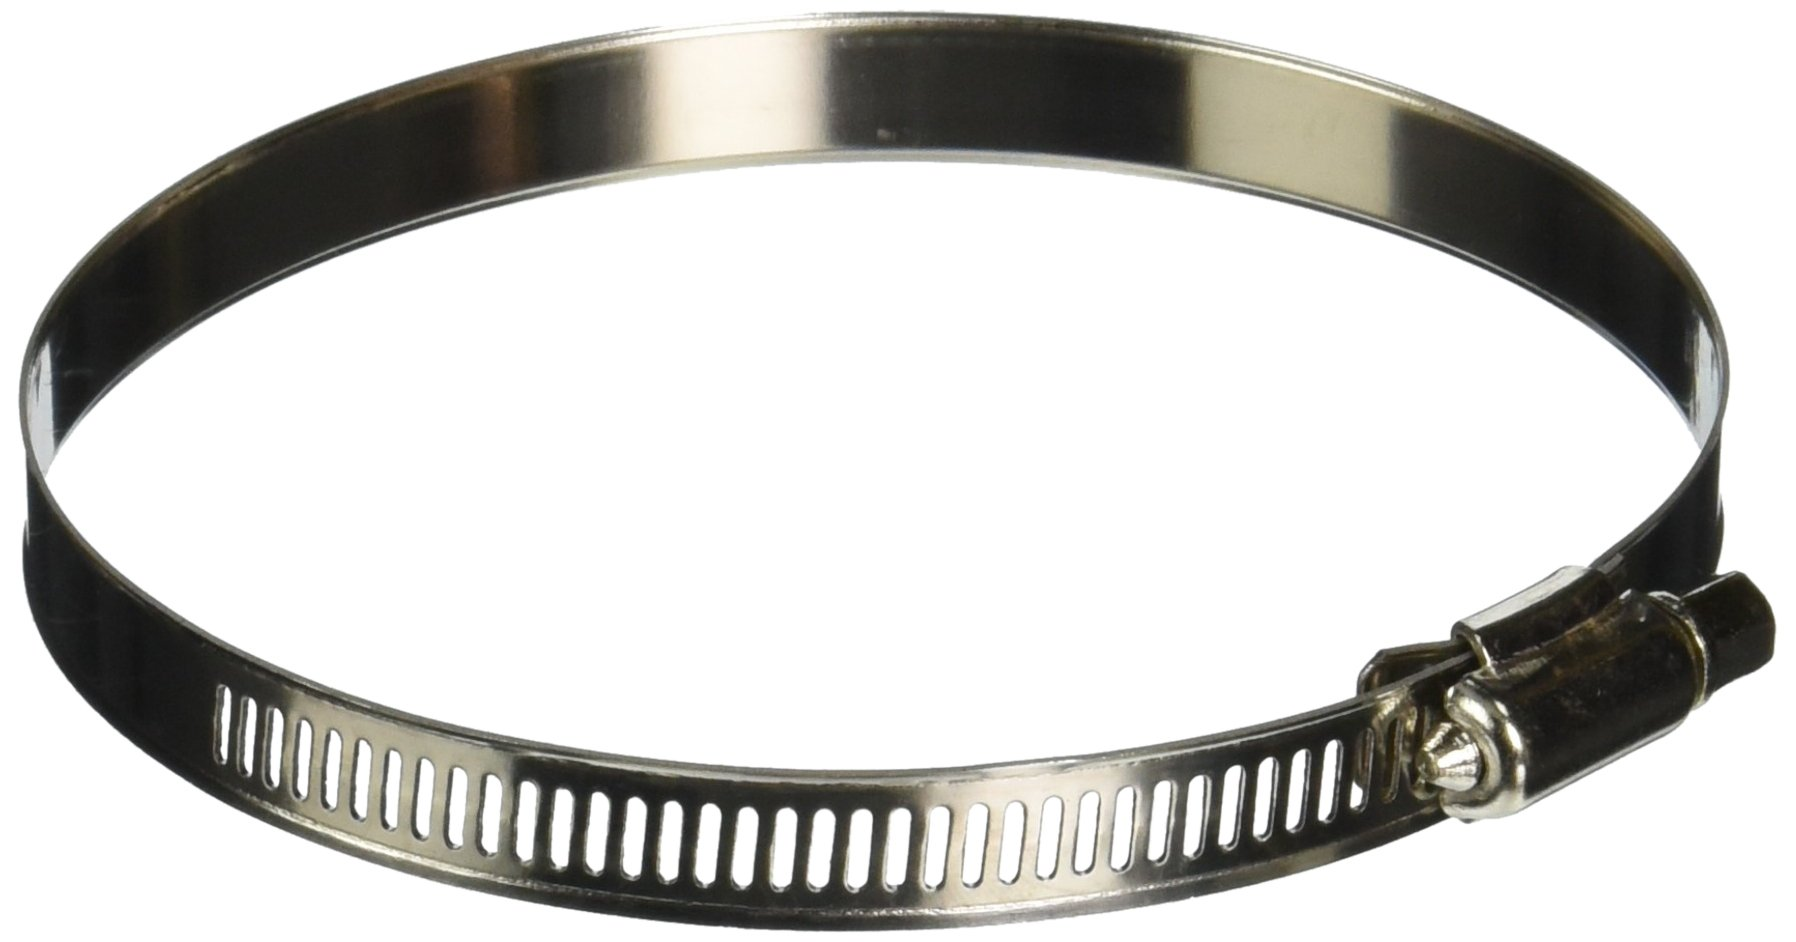 Uxcell Adjustable Range Stainless Steel Band Worm Gear Hose Clamp (2 Piece), 91-114mm